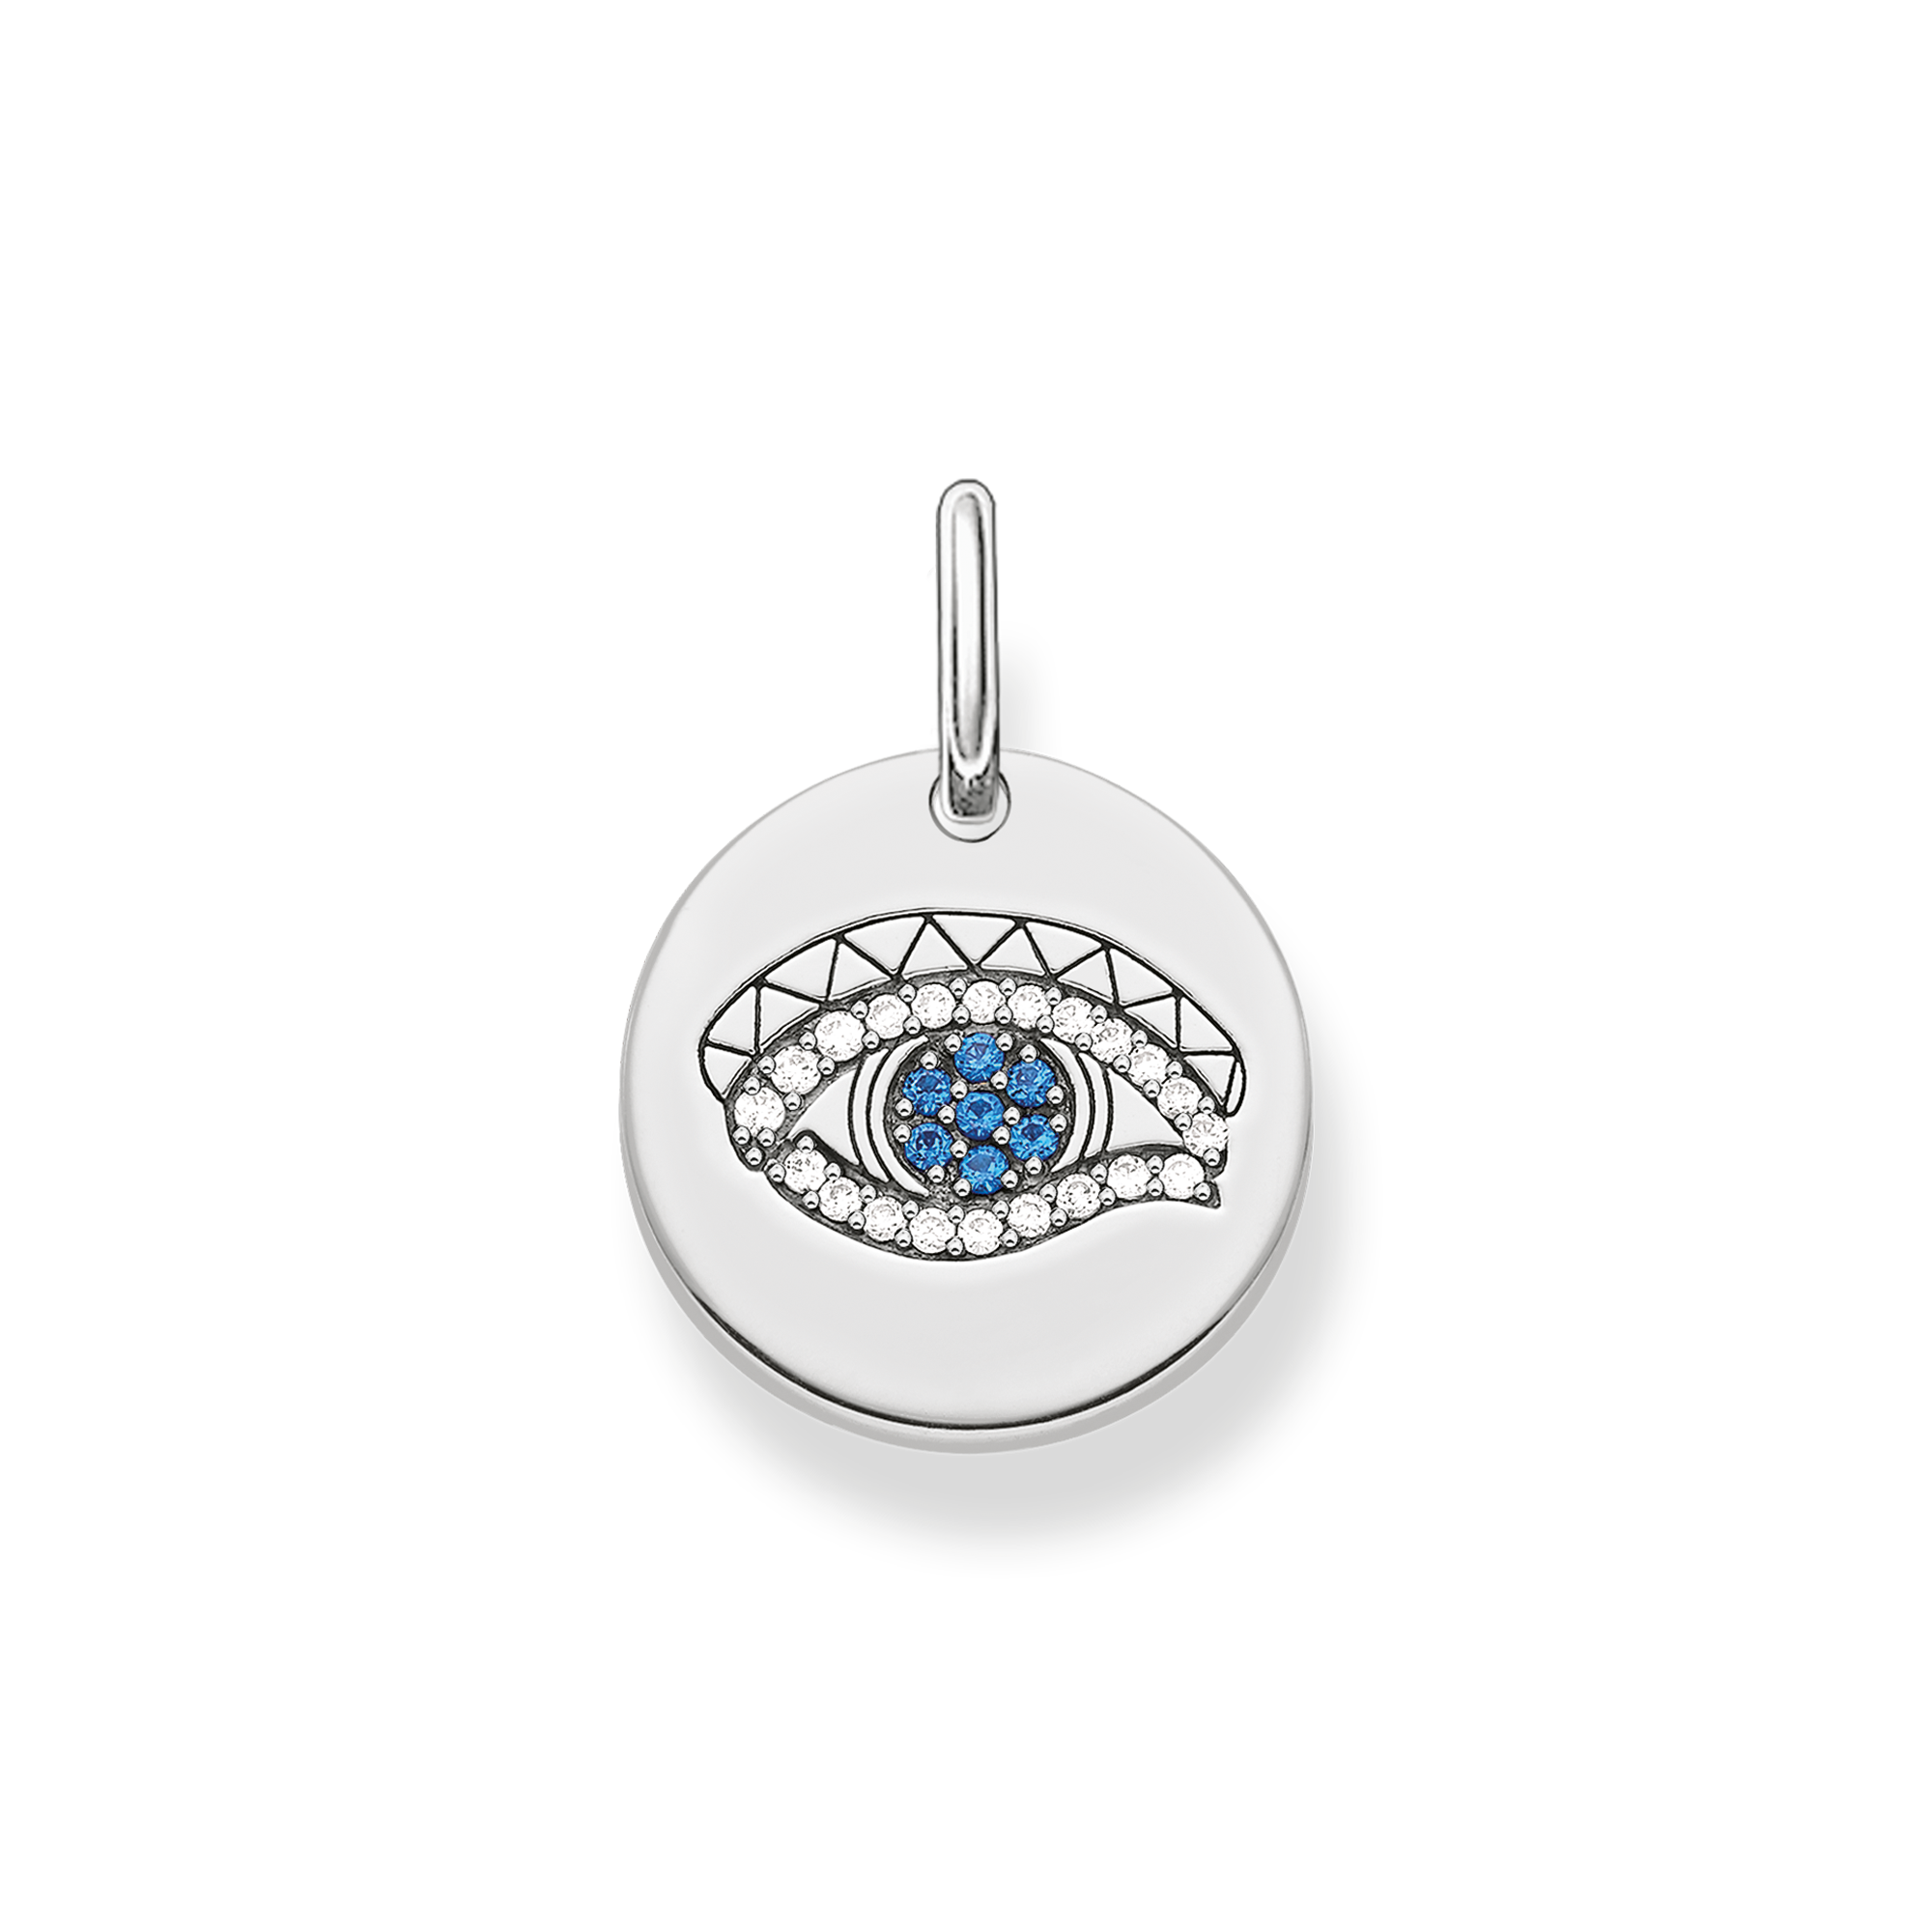 Thomas Sabo - personalised pendant - 1